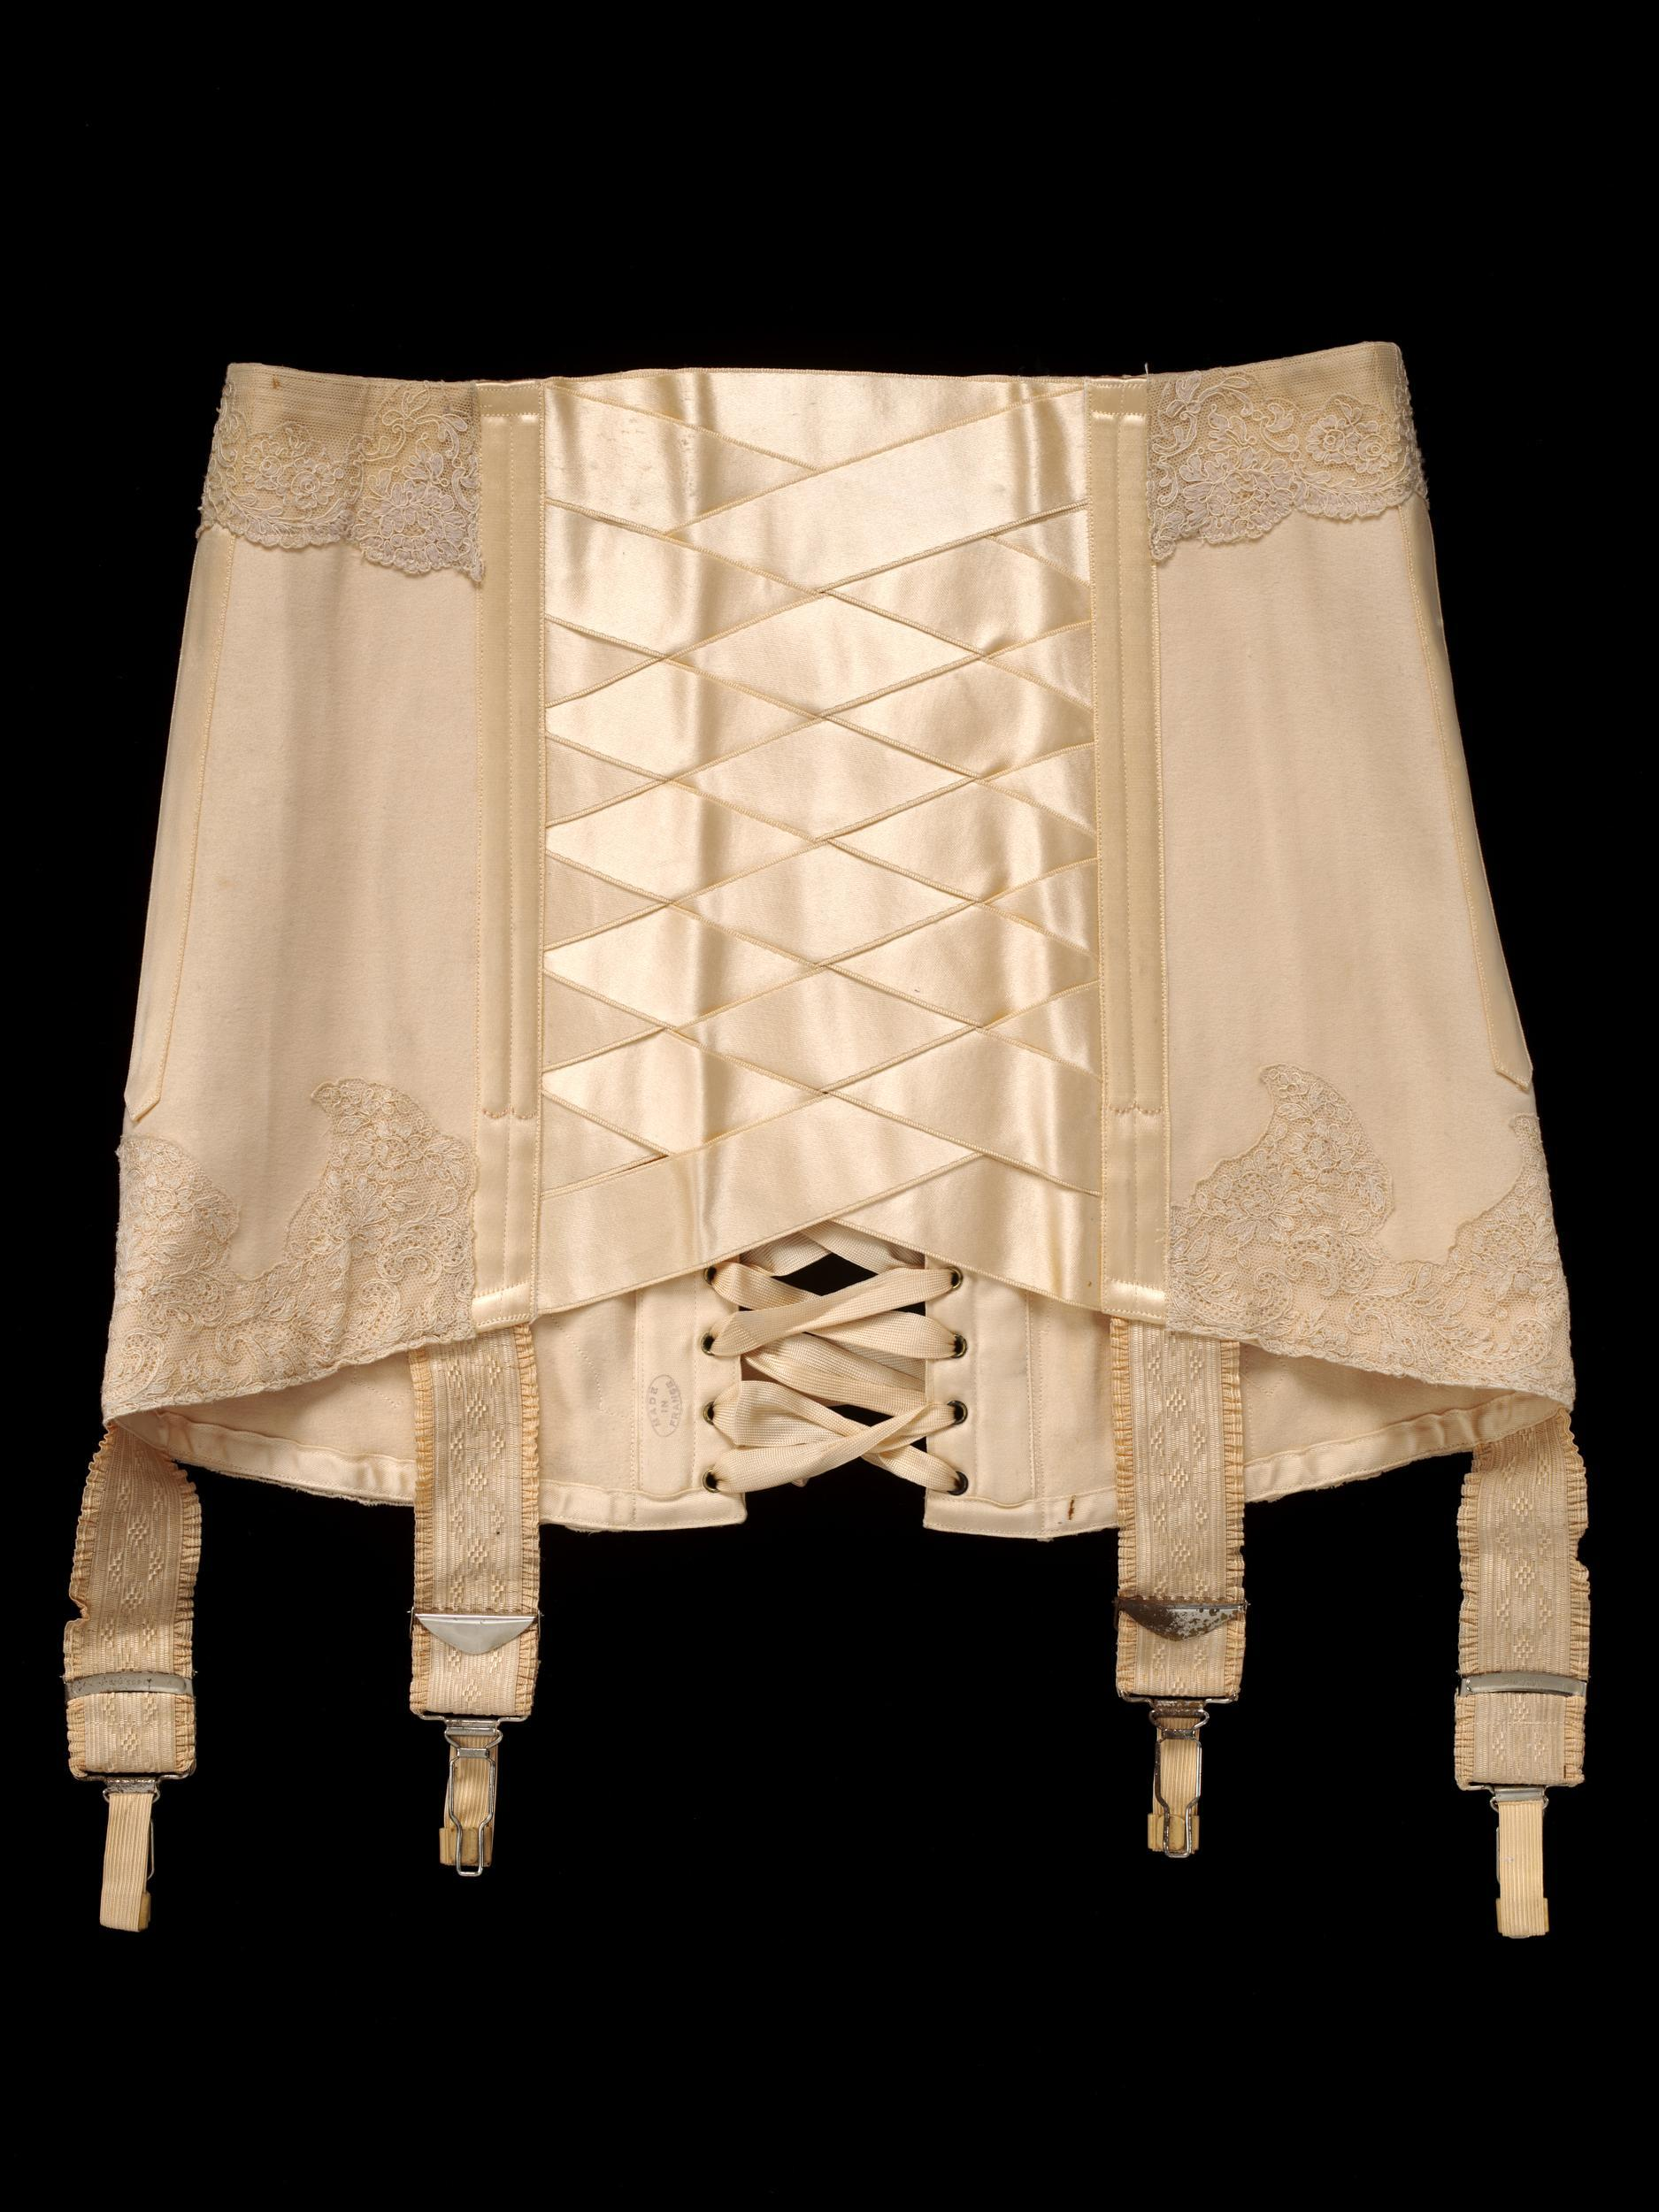 TANGO CORSET   - Cotton, Silk satin ribbon, Machine lace, Metal circumference / ca. 1914 France, for  Debenham & Freebody , London (V&A:T.64-1966) * Size  - waist: 67cm / hip: 88cm / Length front: 25cm / back: 33cm  Worn and given by Heather Firbank